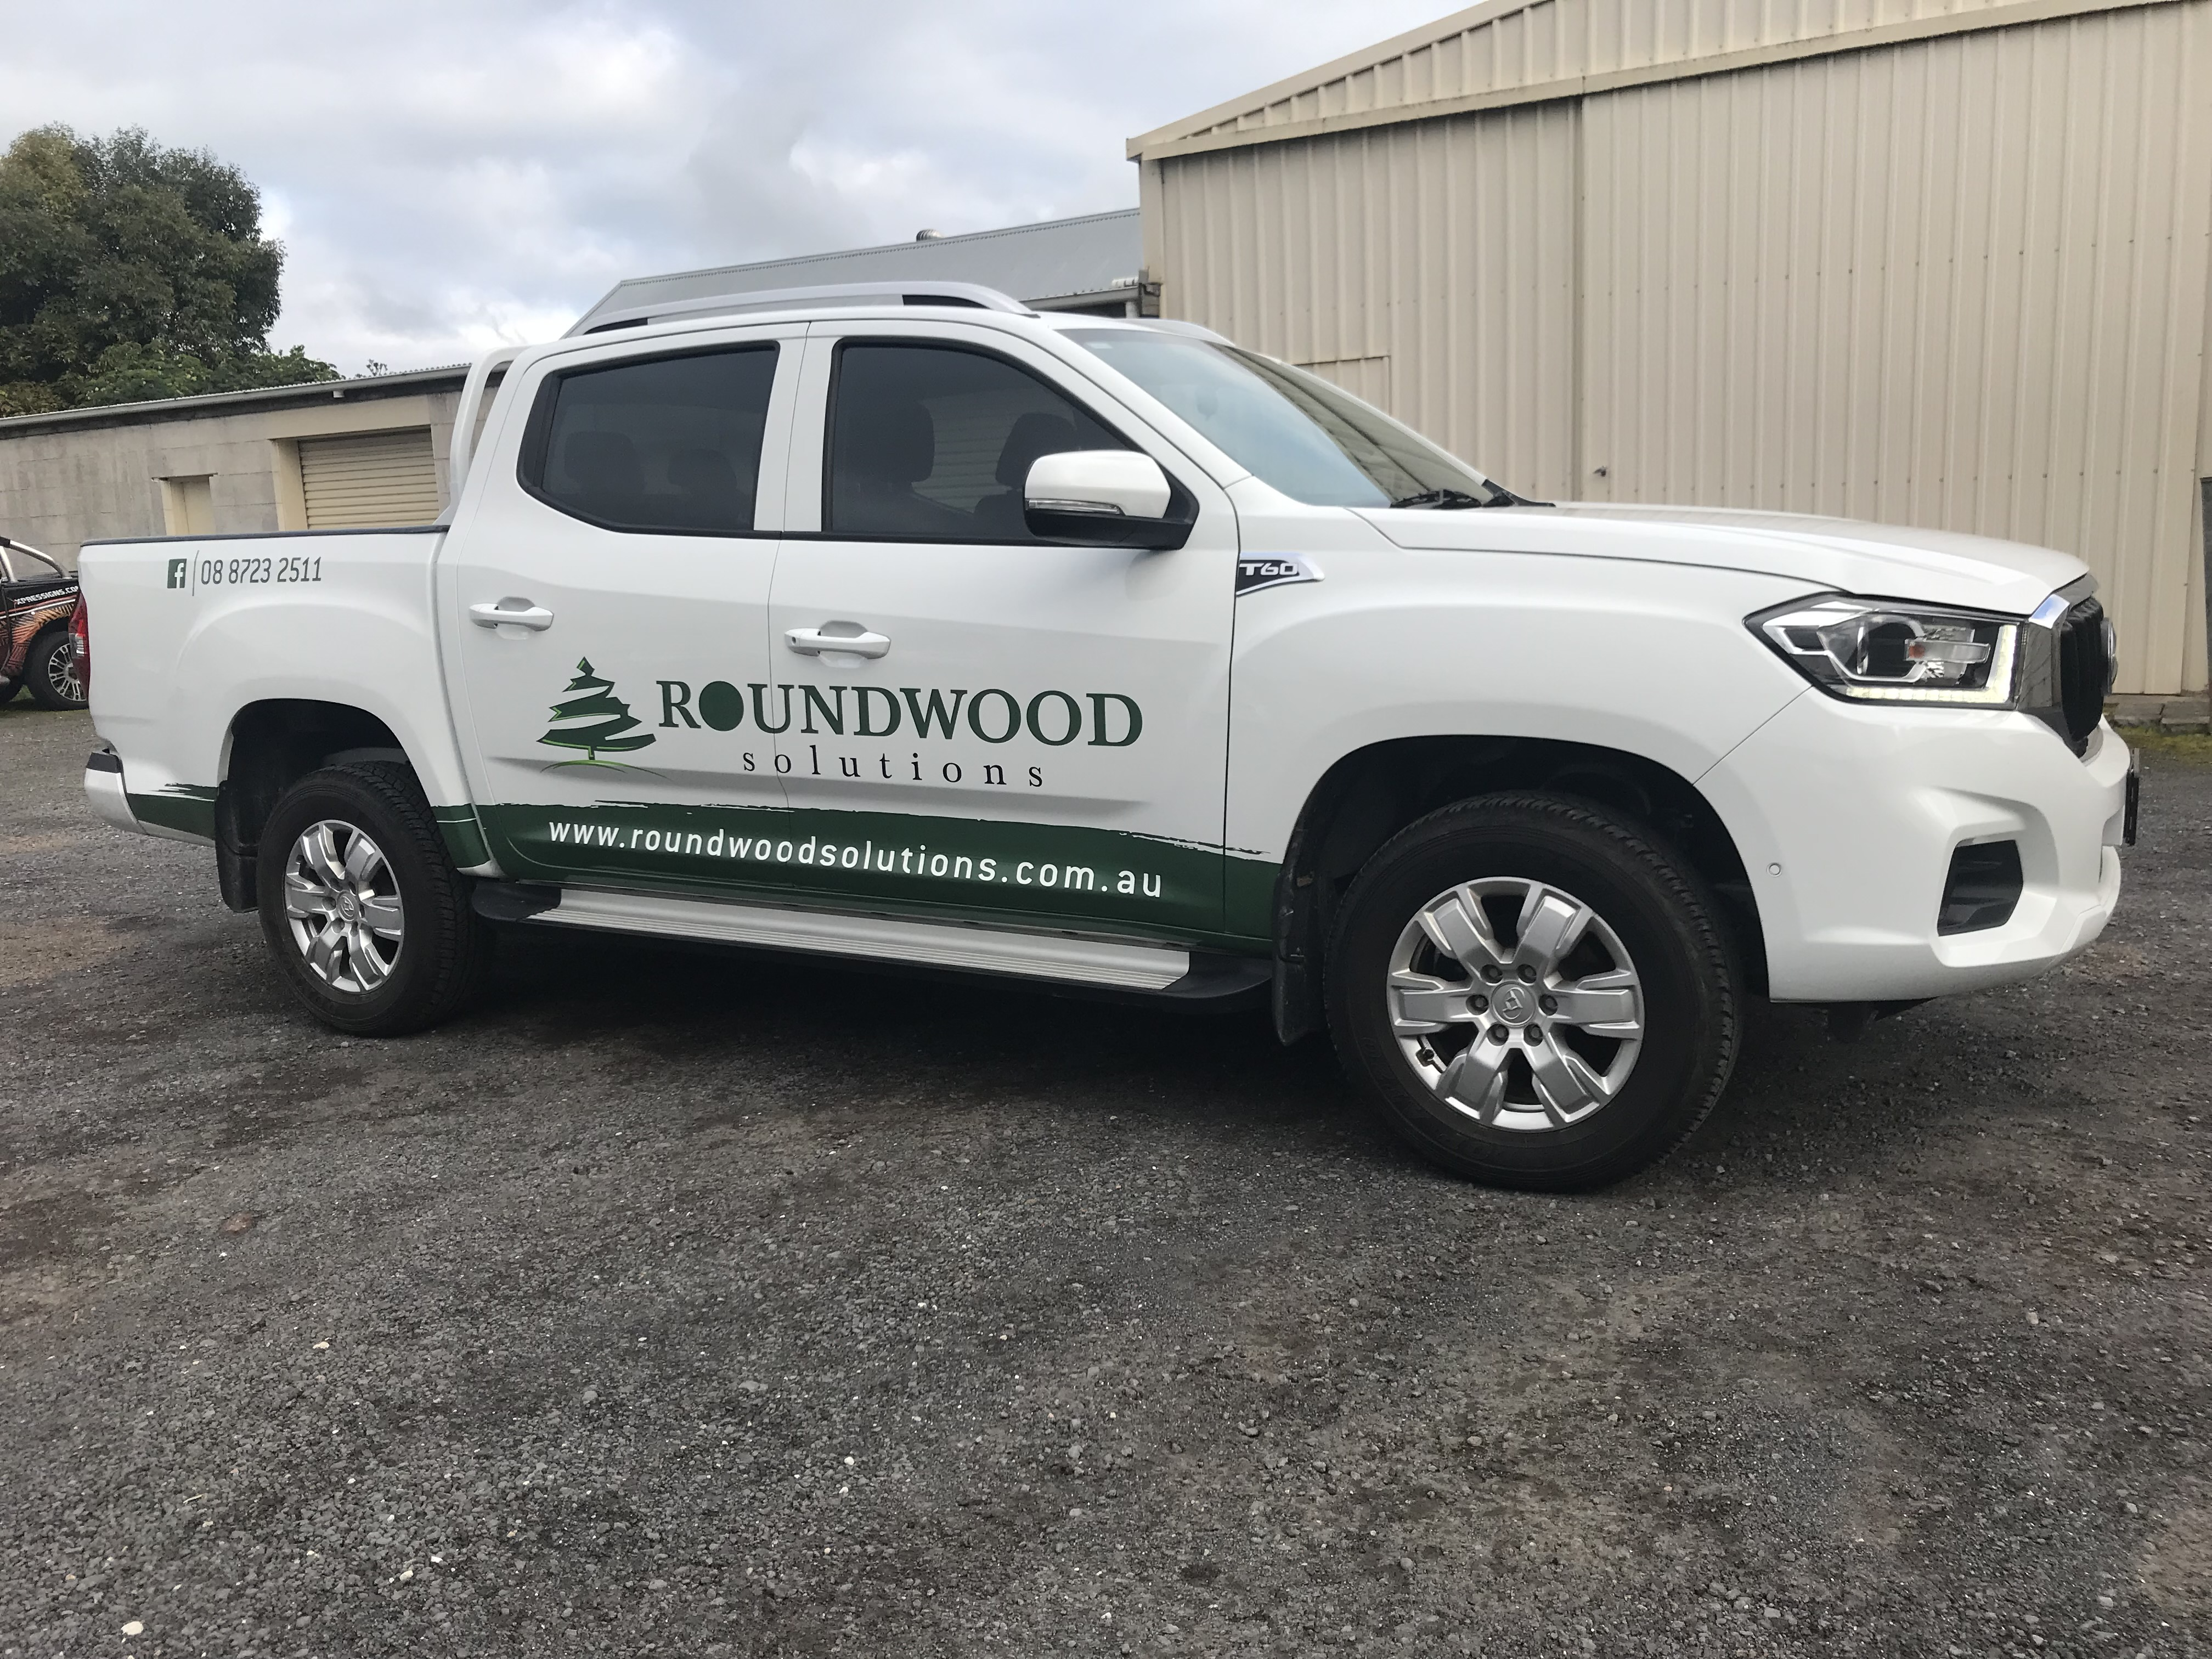 Roundwood Solutions Ute Signge